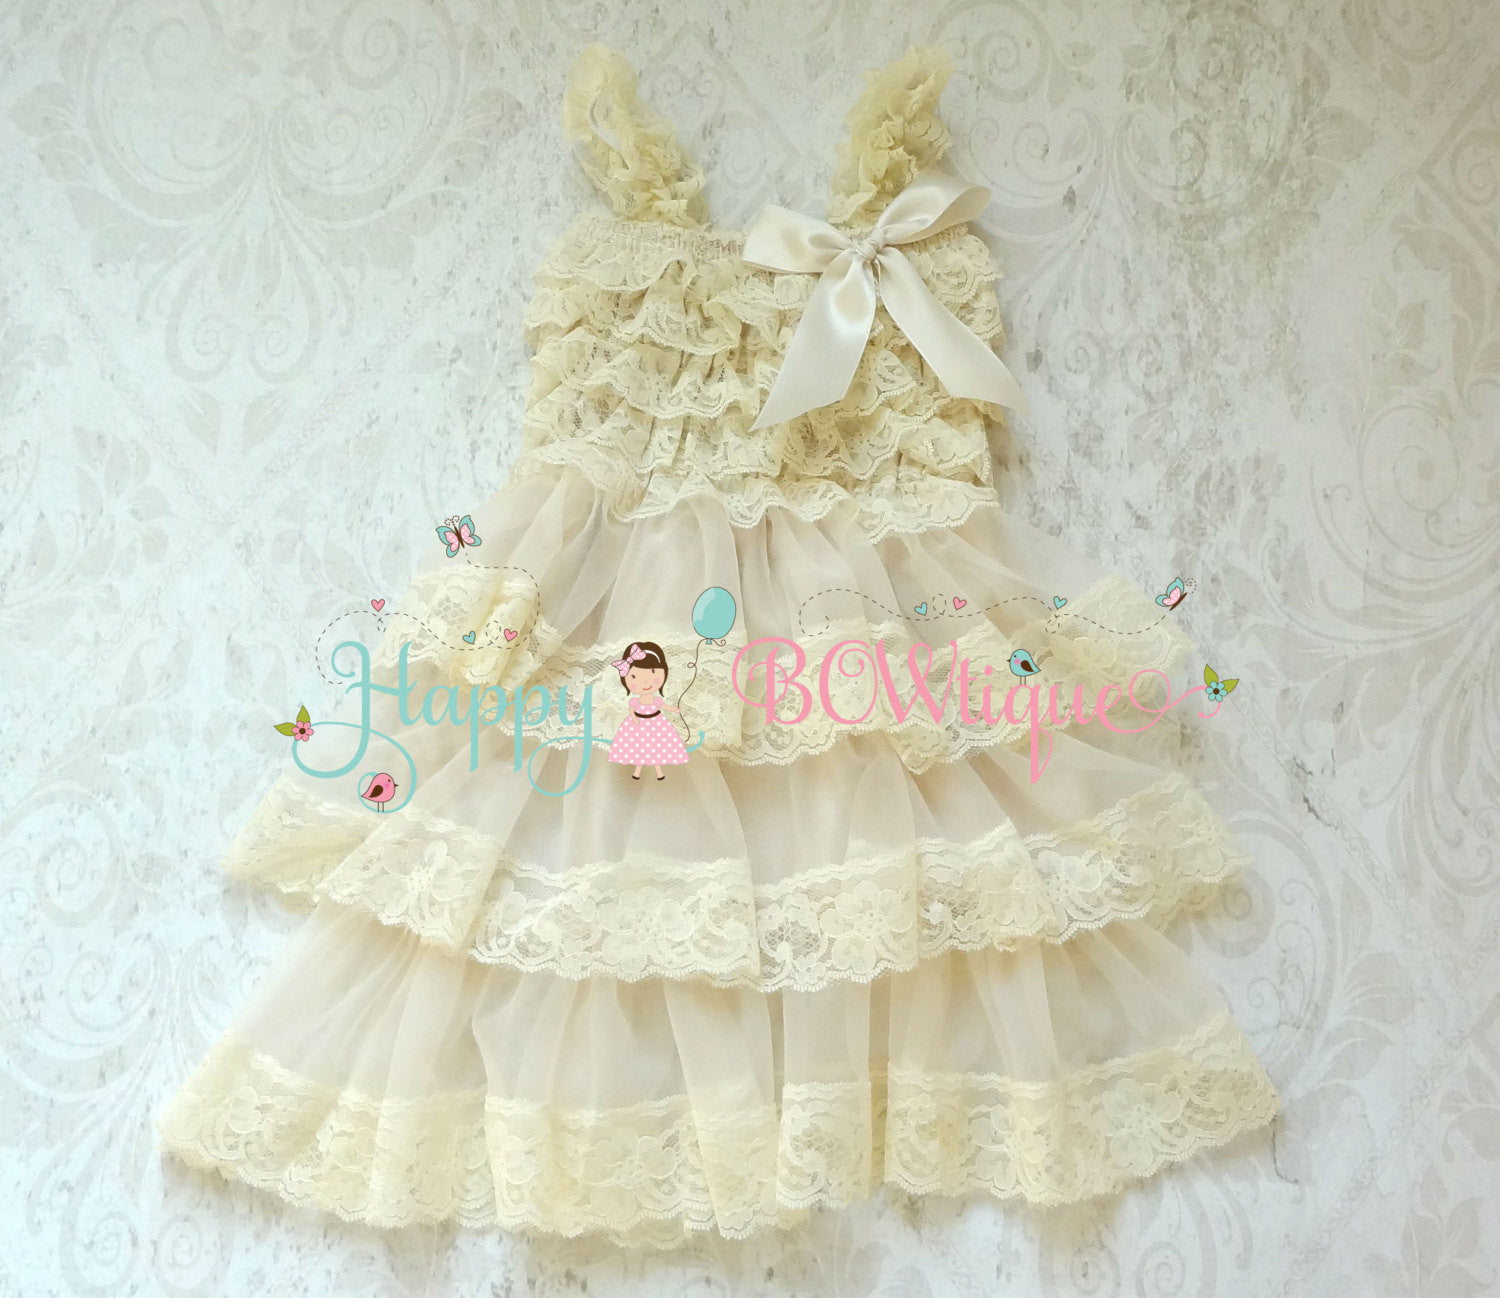 Rustic Champagne Beige Tier Chiffon lace dress - Happy BOWtique - children's clothing, Baby Girl clothing